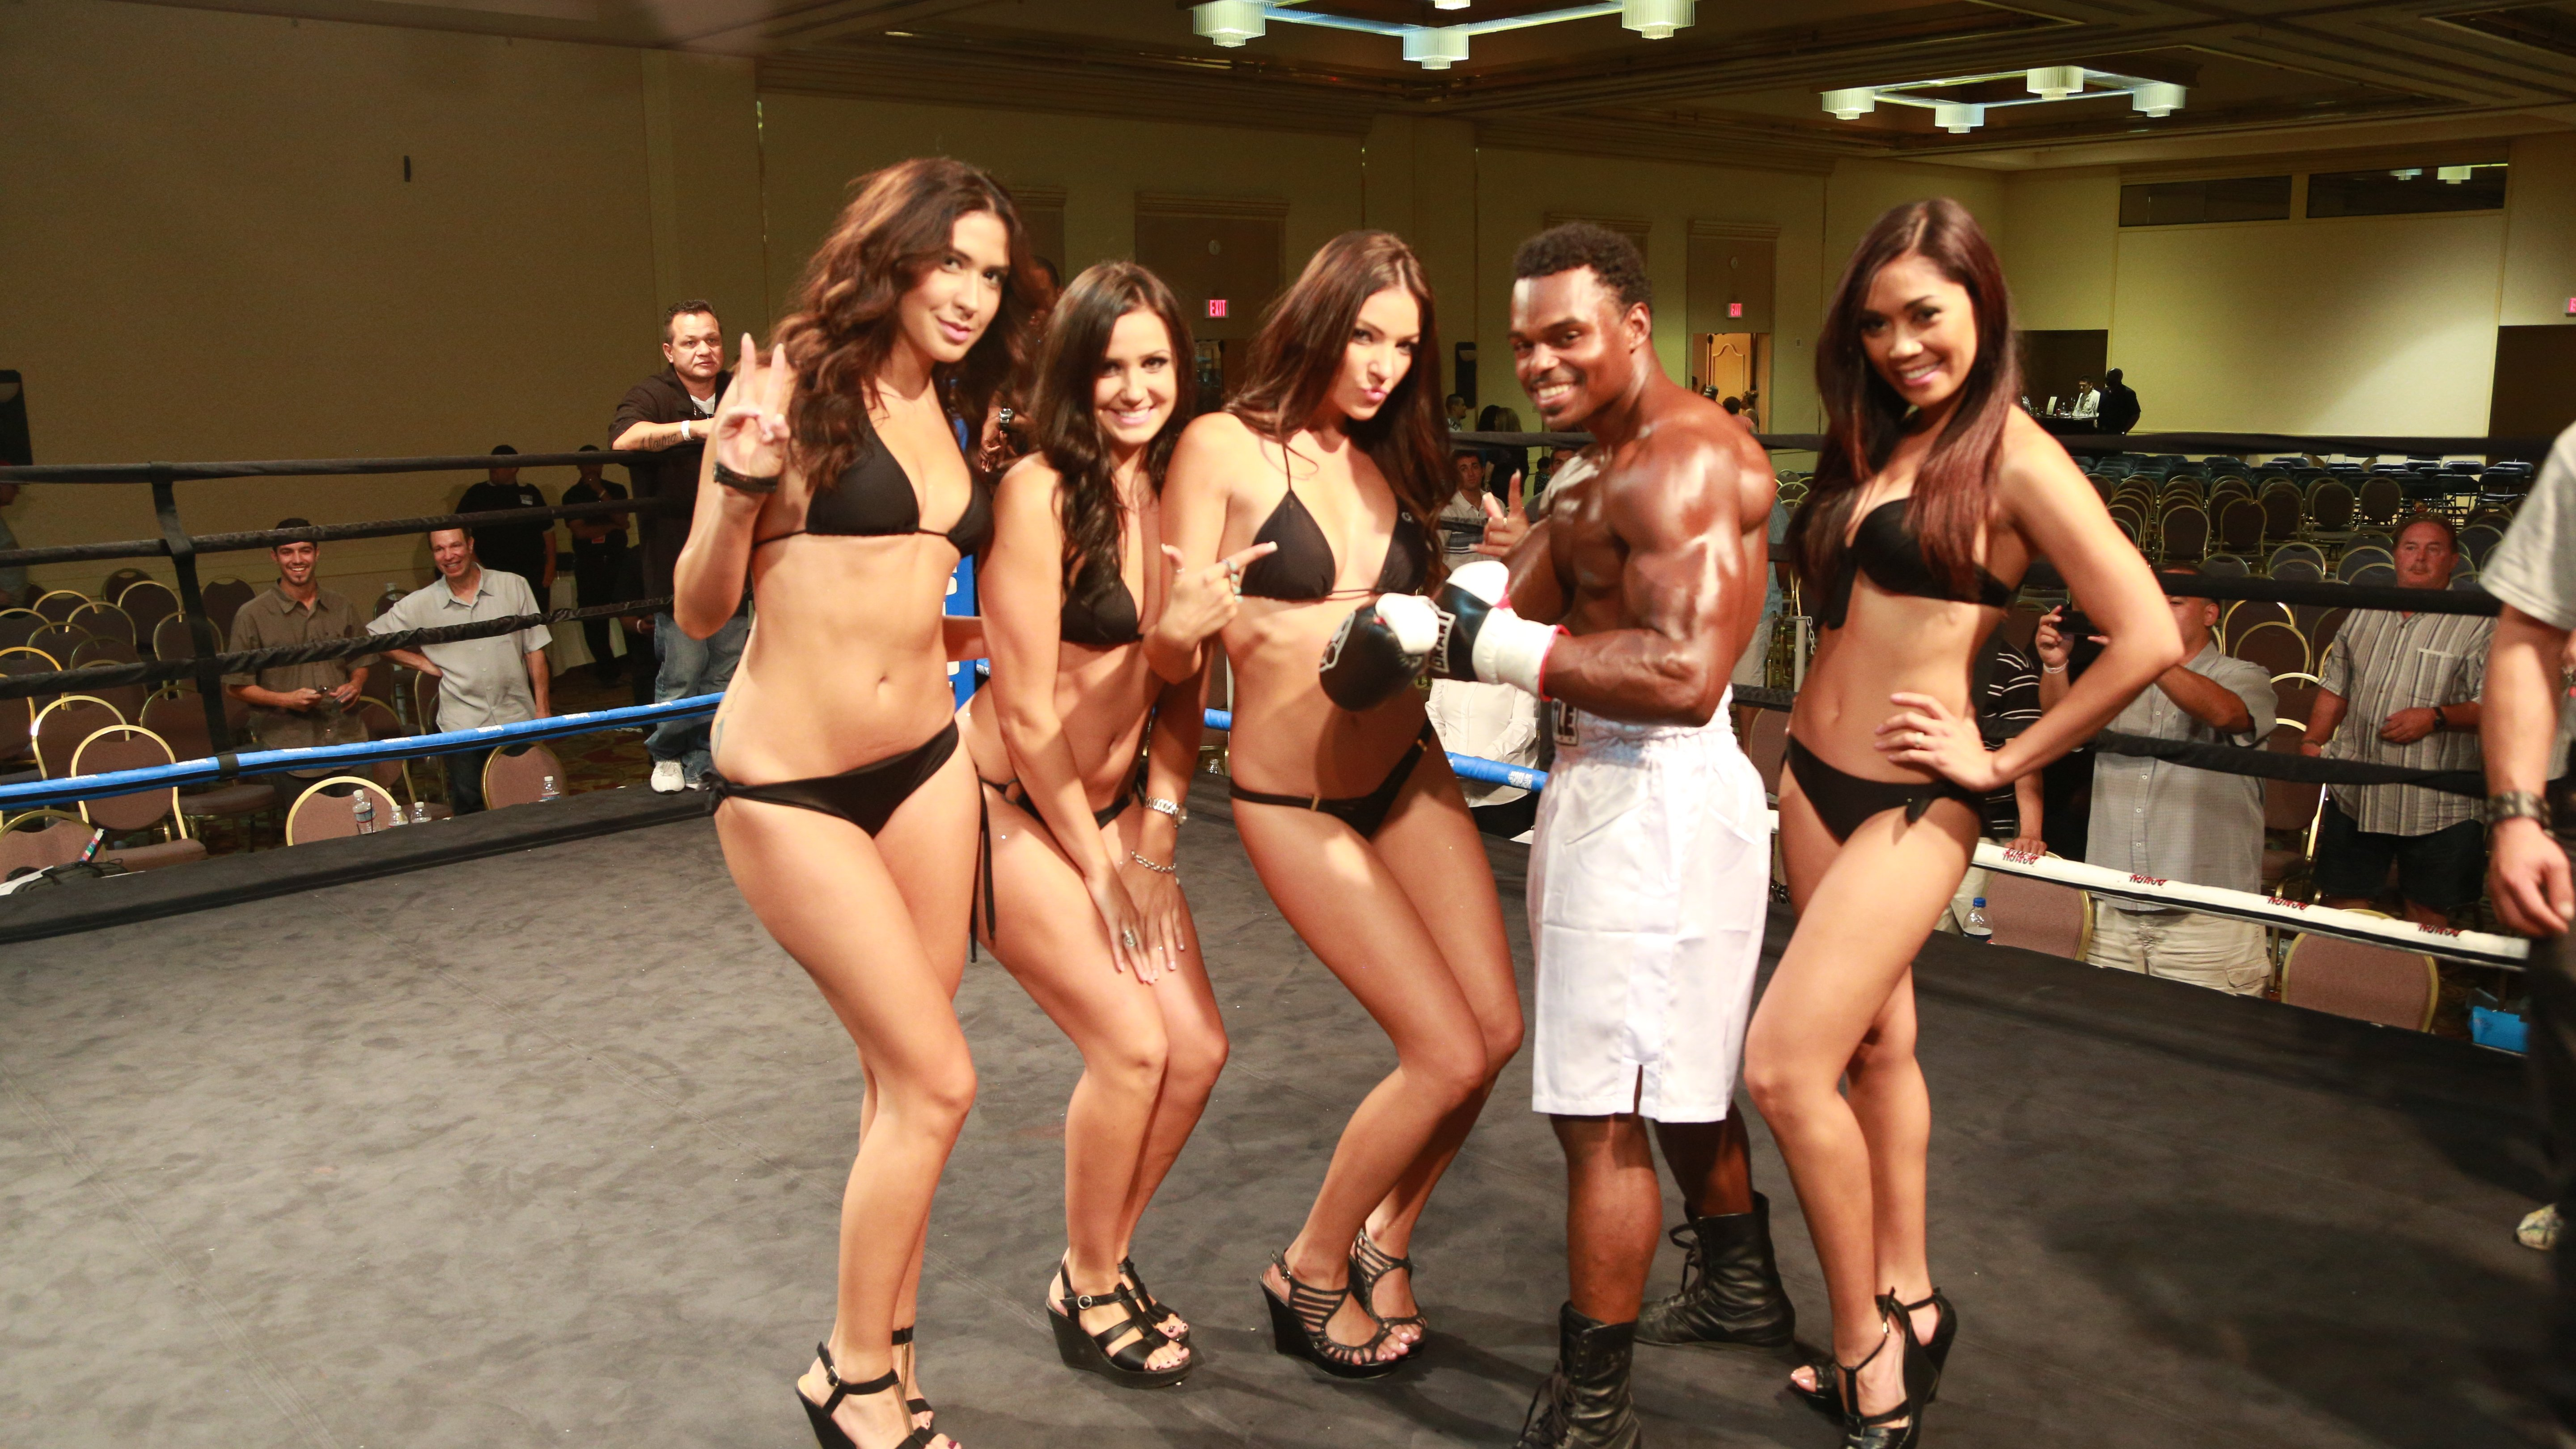 Sexy ring girls tuesday night fights wallpaper can